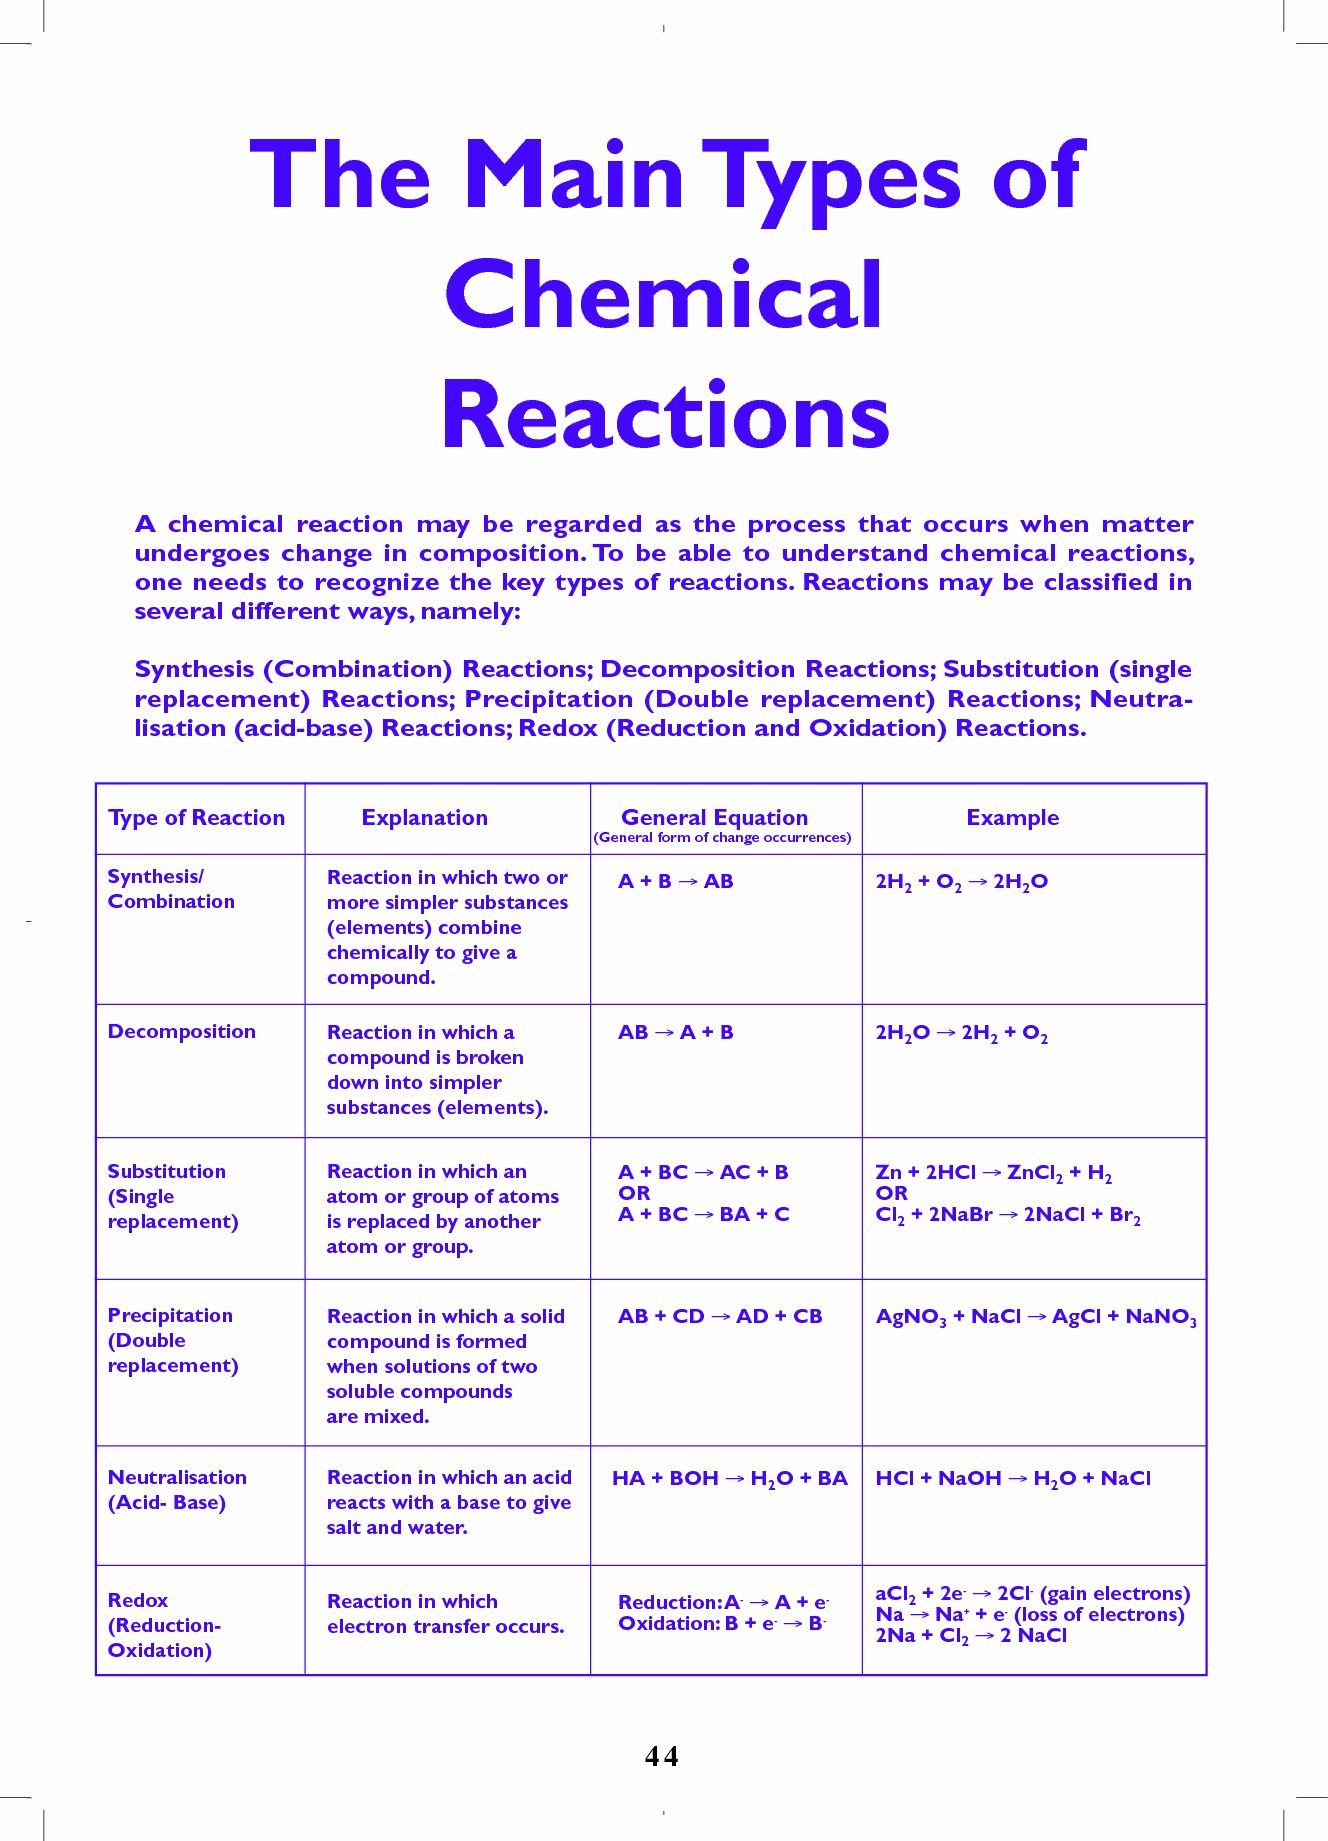 50 Chemical Reactions Types Worksheet In